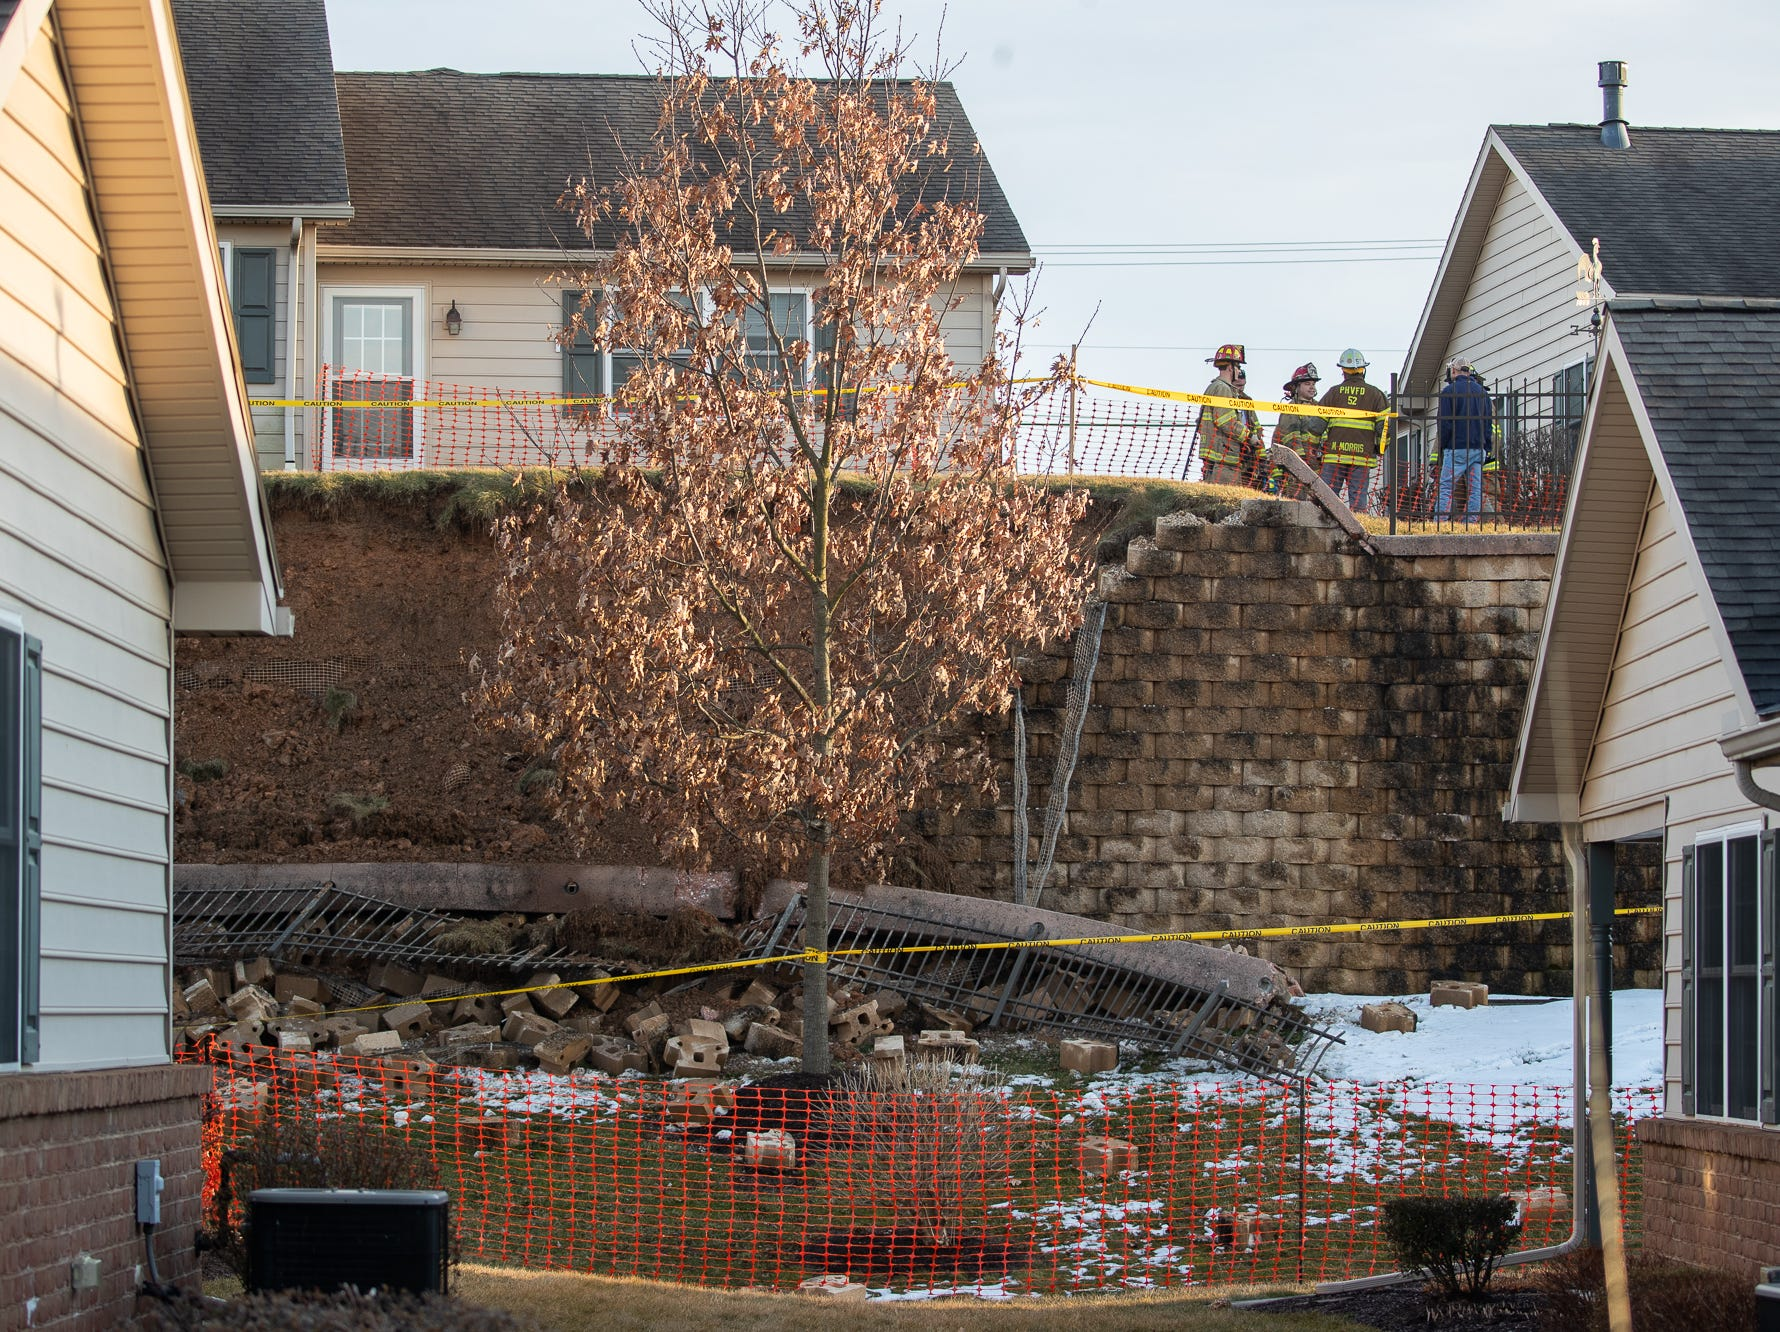 Emergency personnel work at the scene of a retaining wall collapse on the 1000 block of Bear Crossing, Sunday, March 10, 2019, in West Manheim Township. No one was injured in the collapse, which forced the evacuations of 26 housing units.